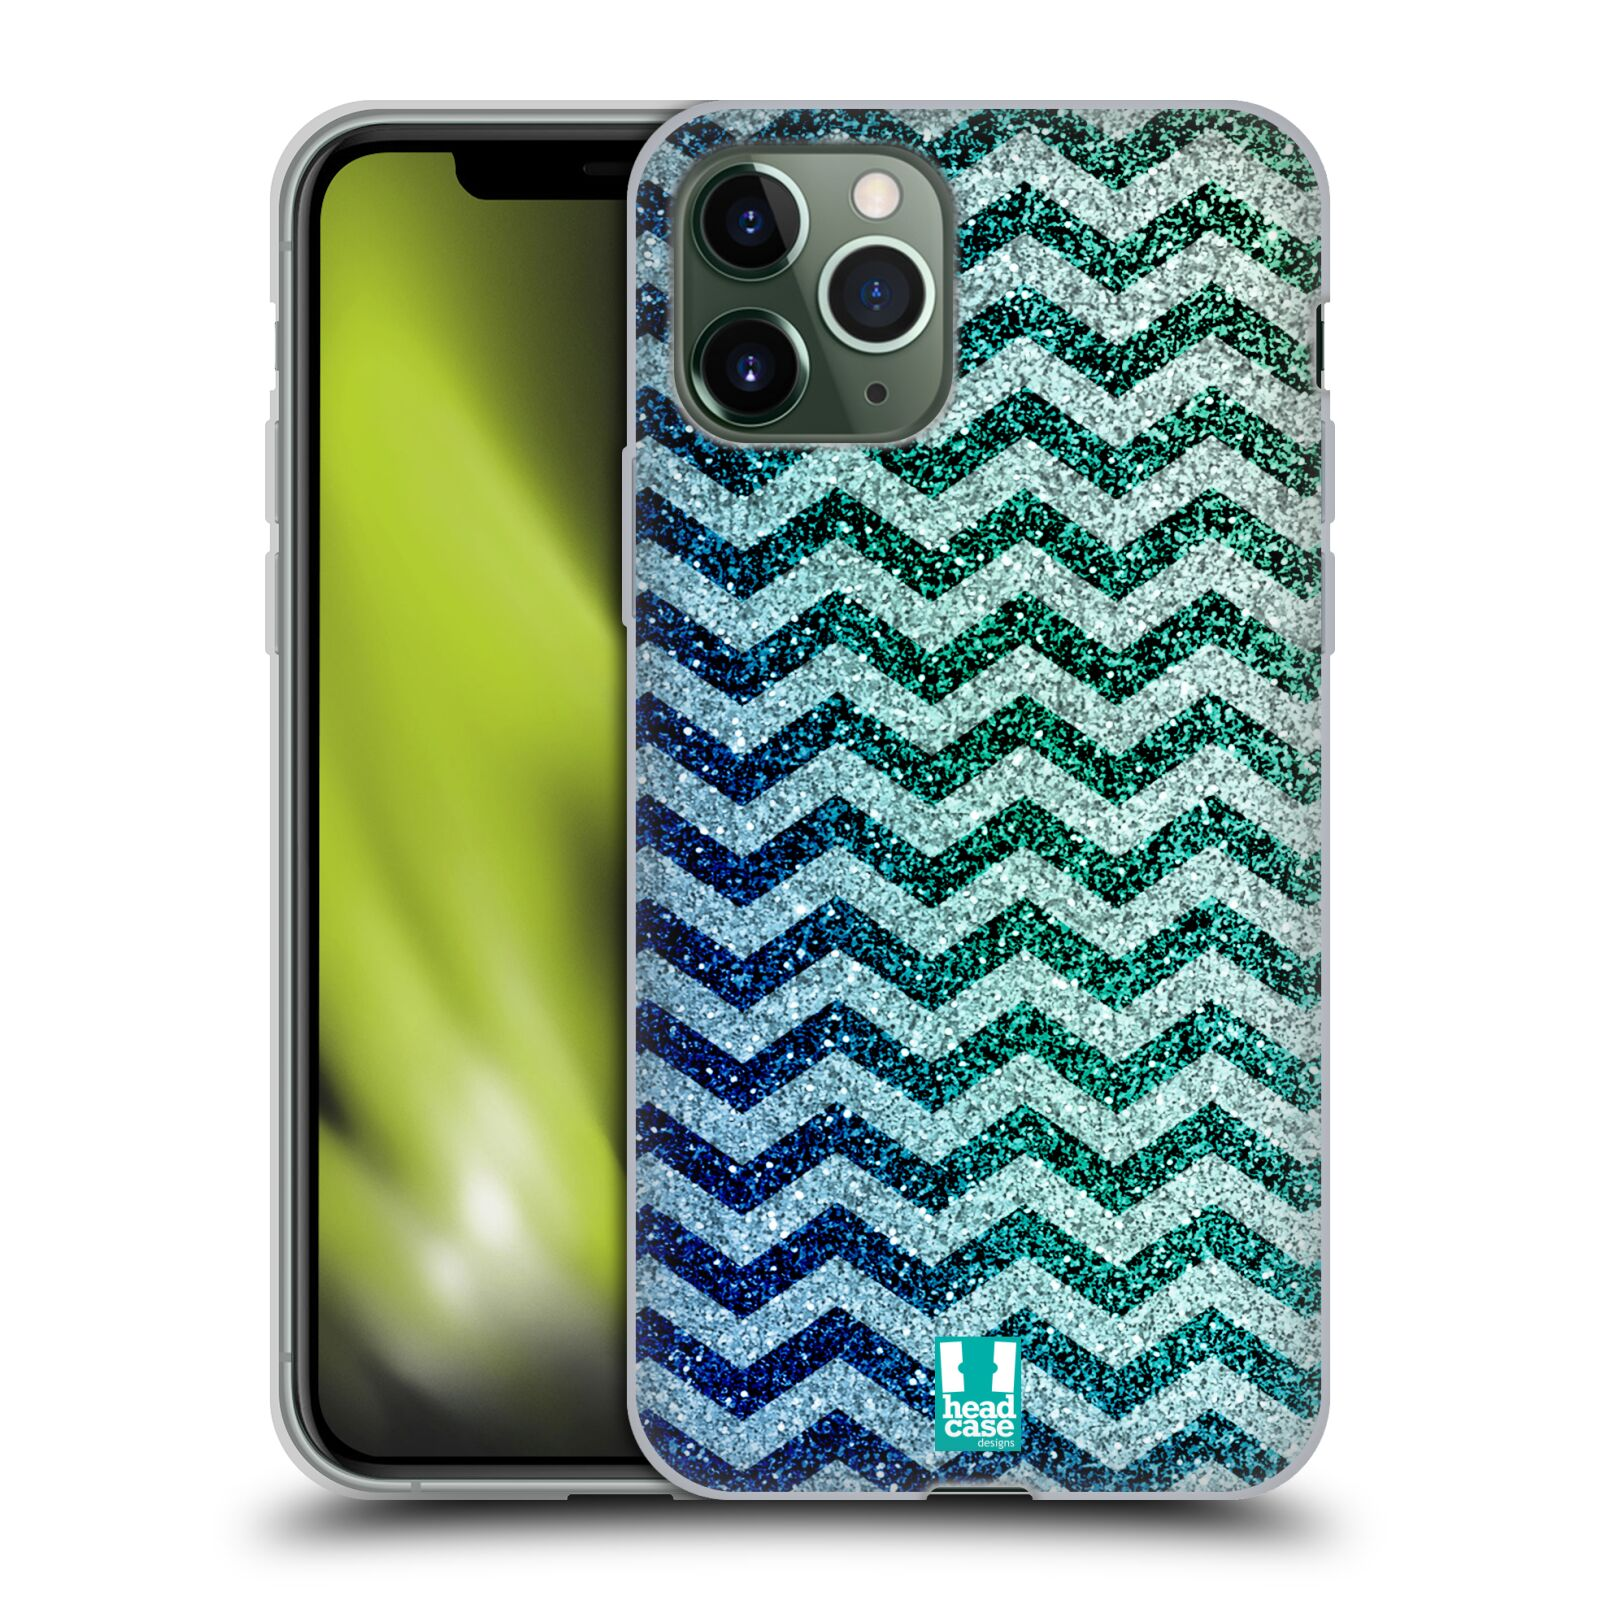 iphone obal na krk - Silikonové pouzdro na mobil Apple iPhone 11 Pro - Head Case - MIX CHEVRON